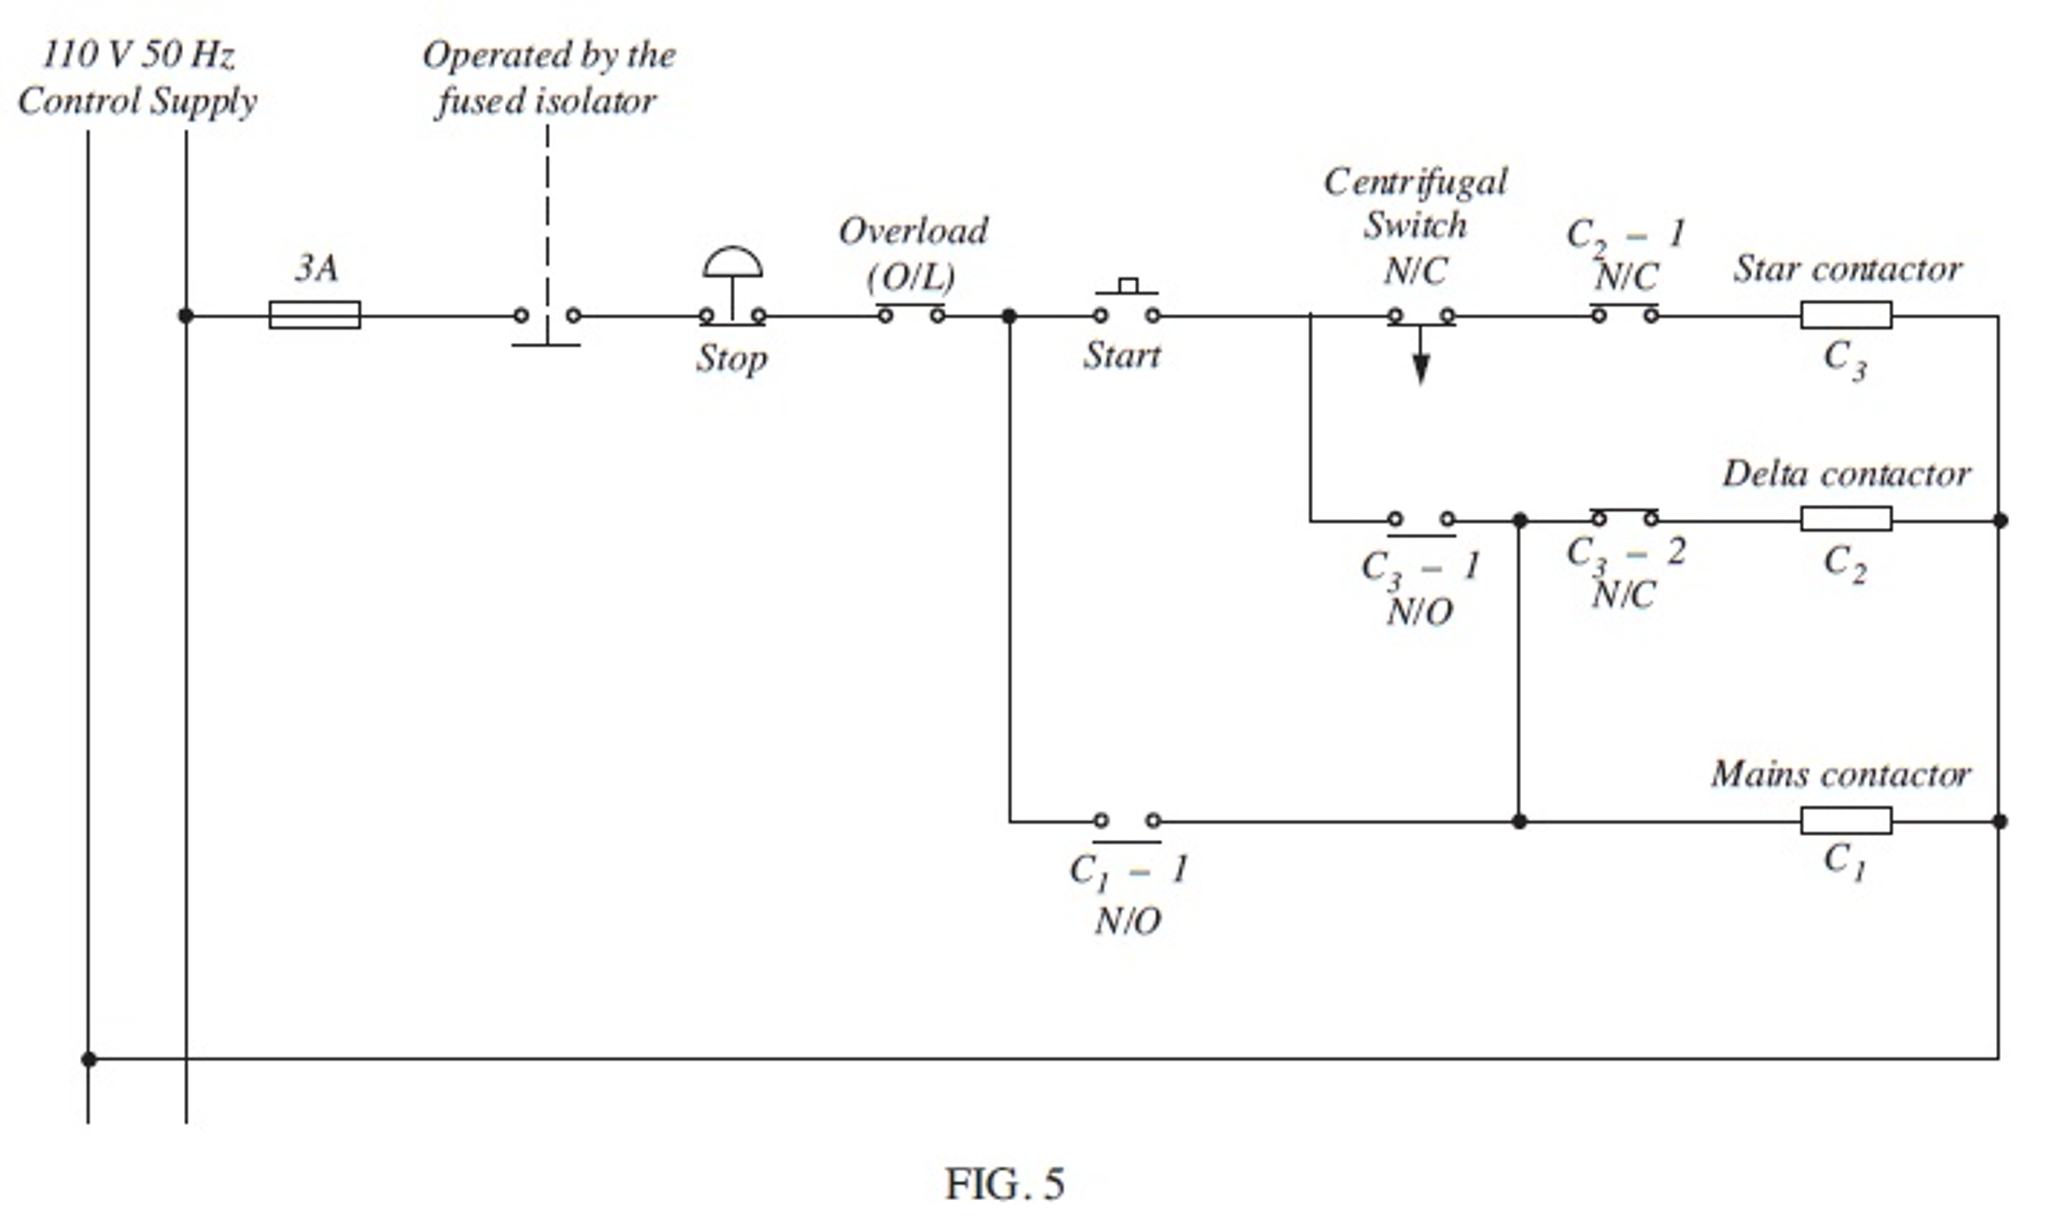 The Circuit Of Figure 4 Shows A 3 Phase Star Delt 5 Delta Starter Control Wiring Diagram Input And Output Designation Tables May Be Drawn Up Or Alternatively Component Designations Can Indicated Alongside Chosen Plc